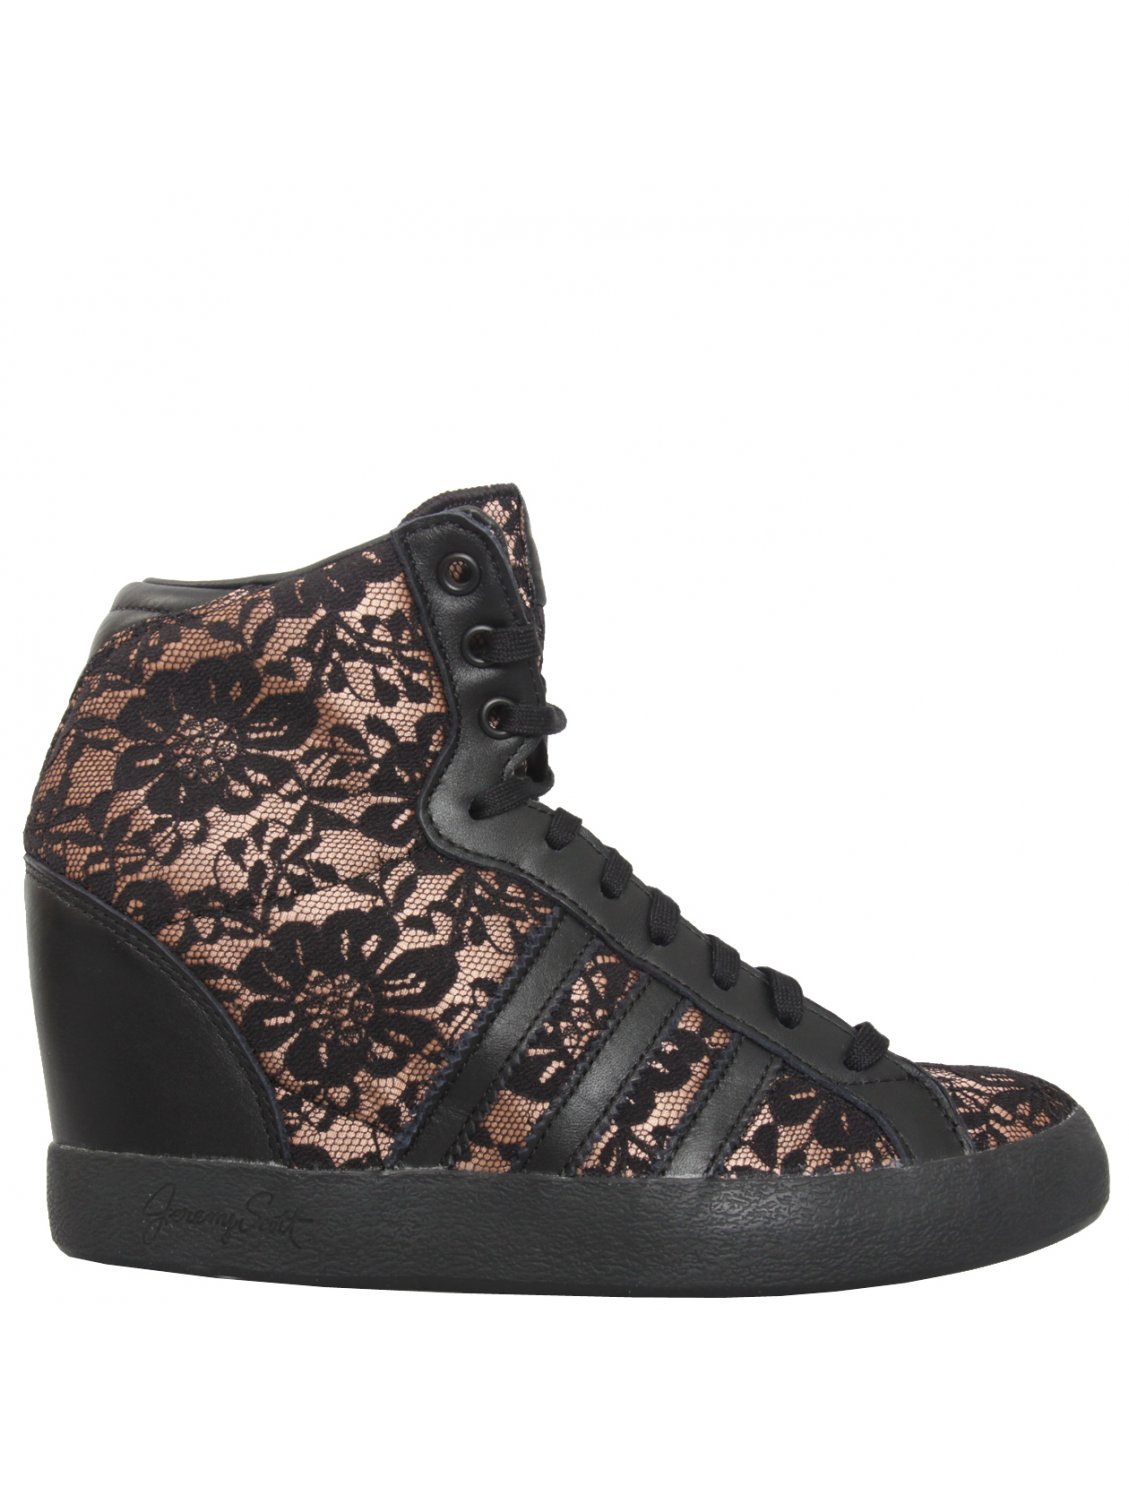 Jeremy Scott For Adidas Lace Wedge Sneakers Black in Black ...